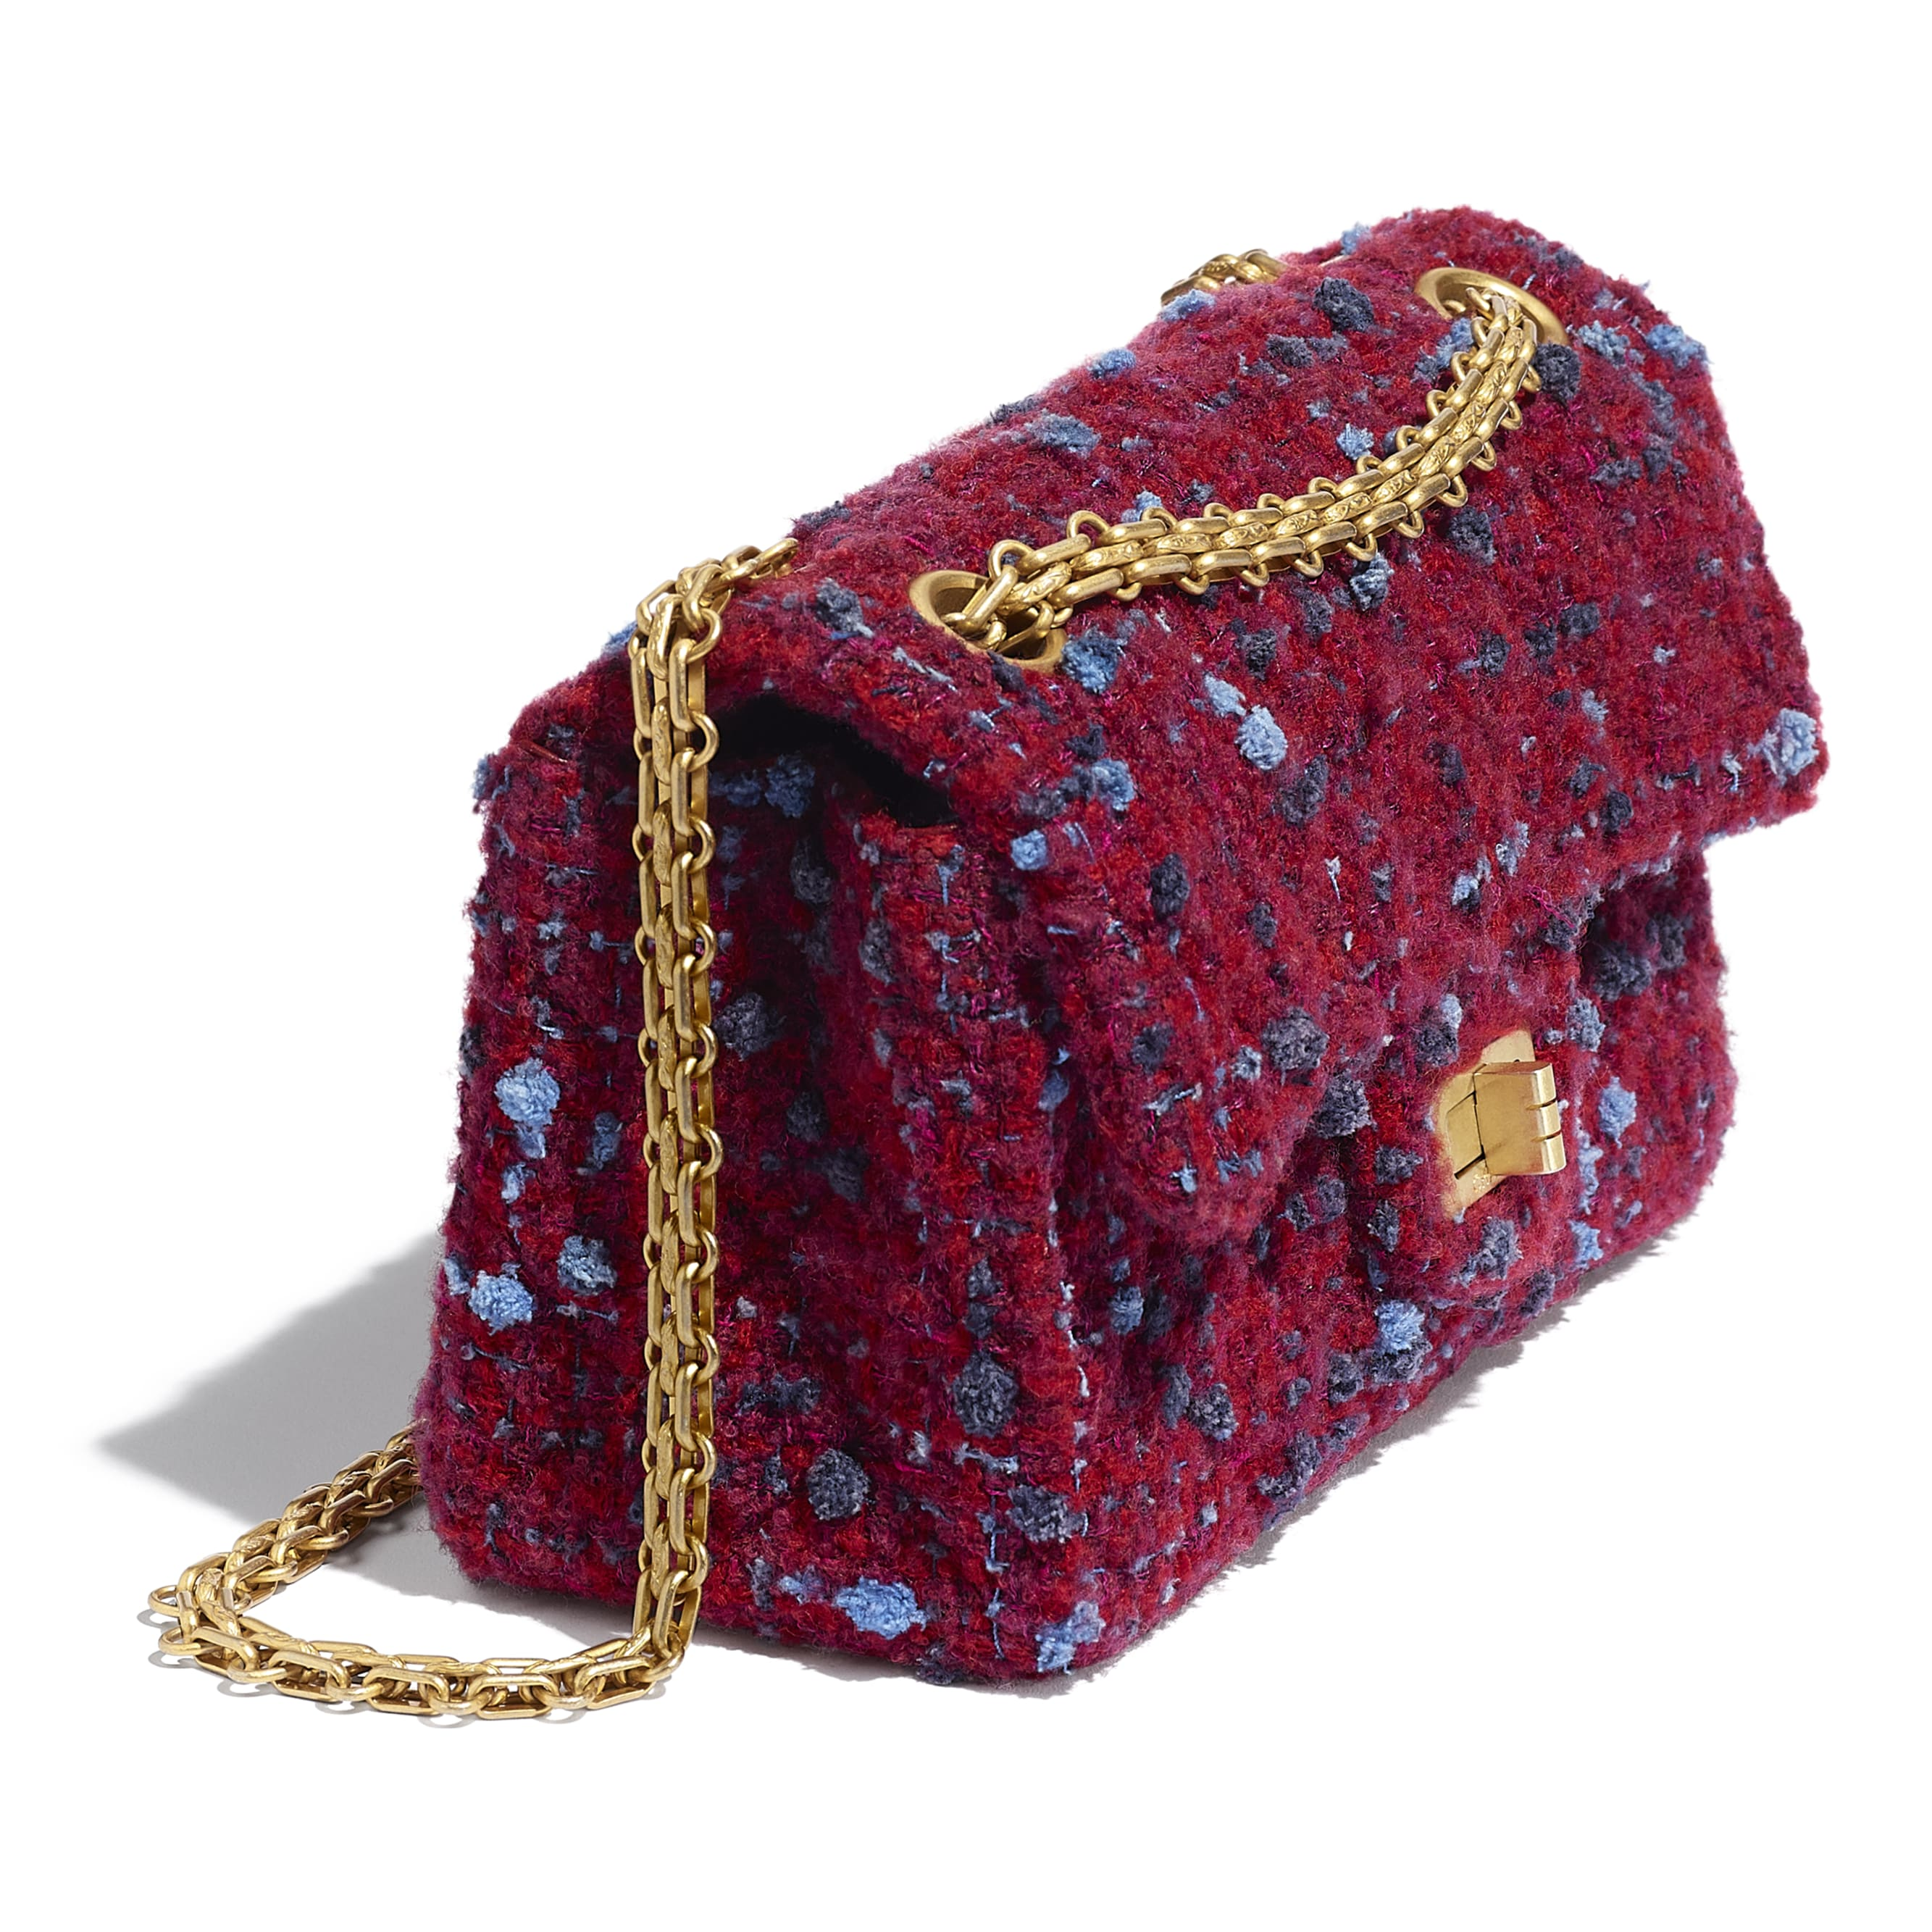 Small 2.55 Handbag - Burgundy, Blue & Grey - Tweed & Gold Metal - CHANEL - Extra view - see standard sized version